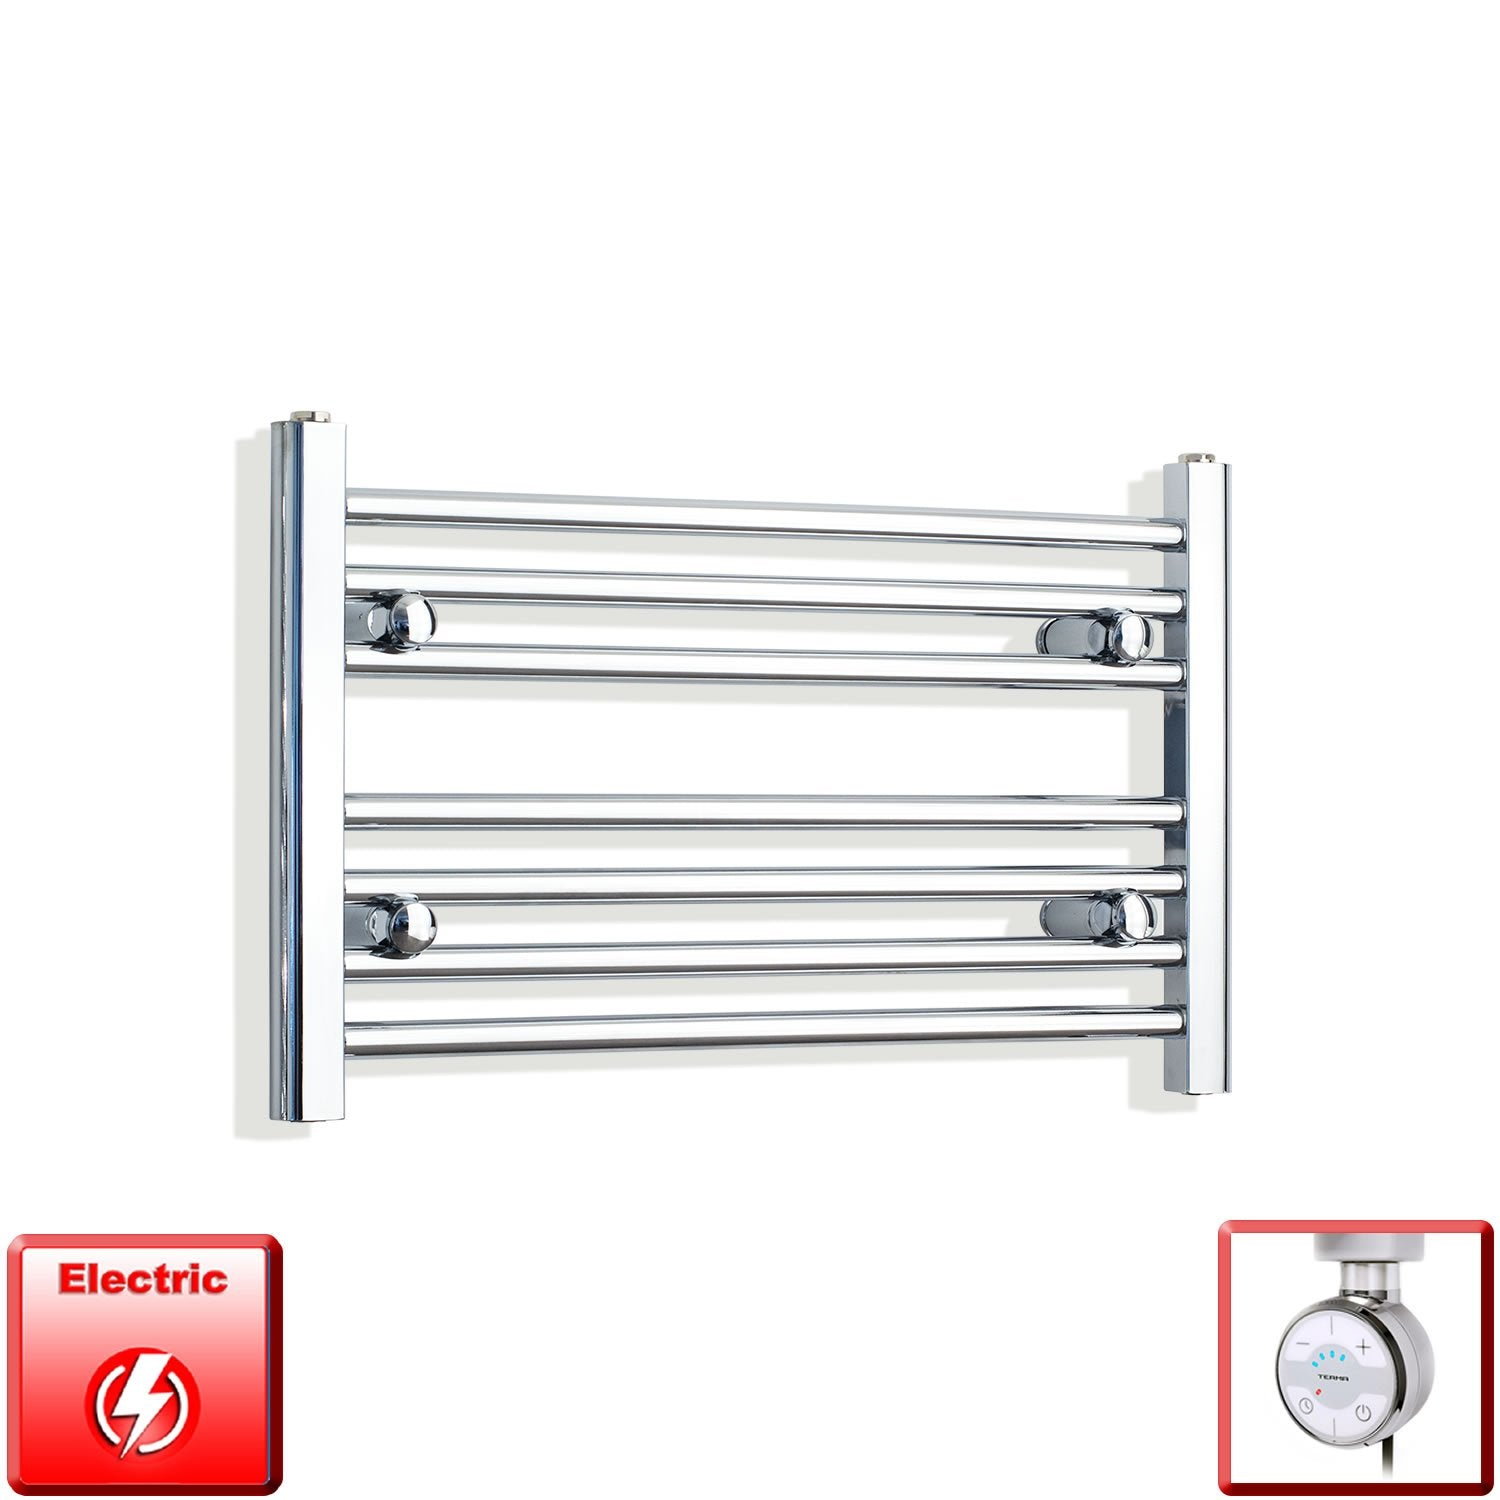 700mm Wide 400mm High Flat Or Curved Chrome Pre-Filled Electric Heated Towel Rail Radiator HTR,MOA Thermostatic Element / Straight